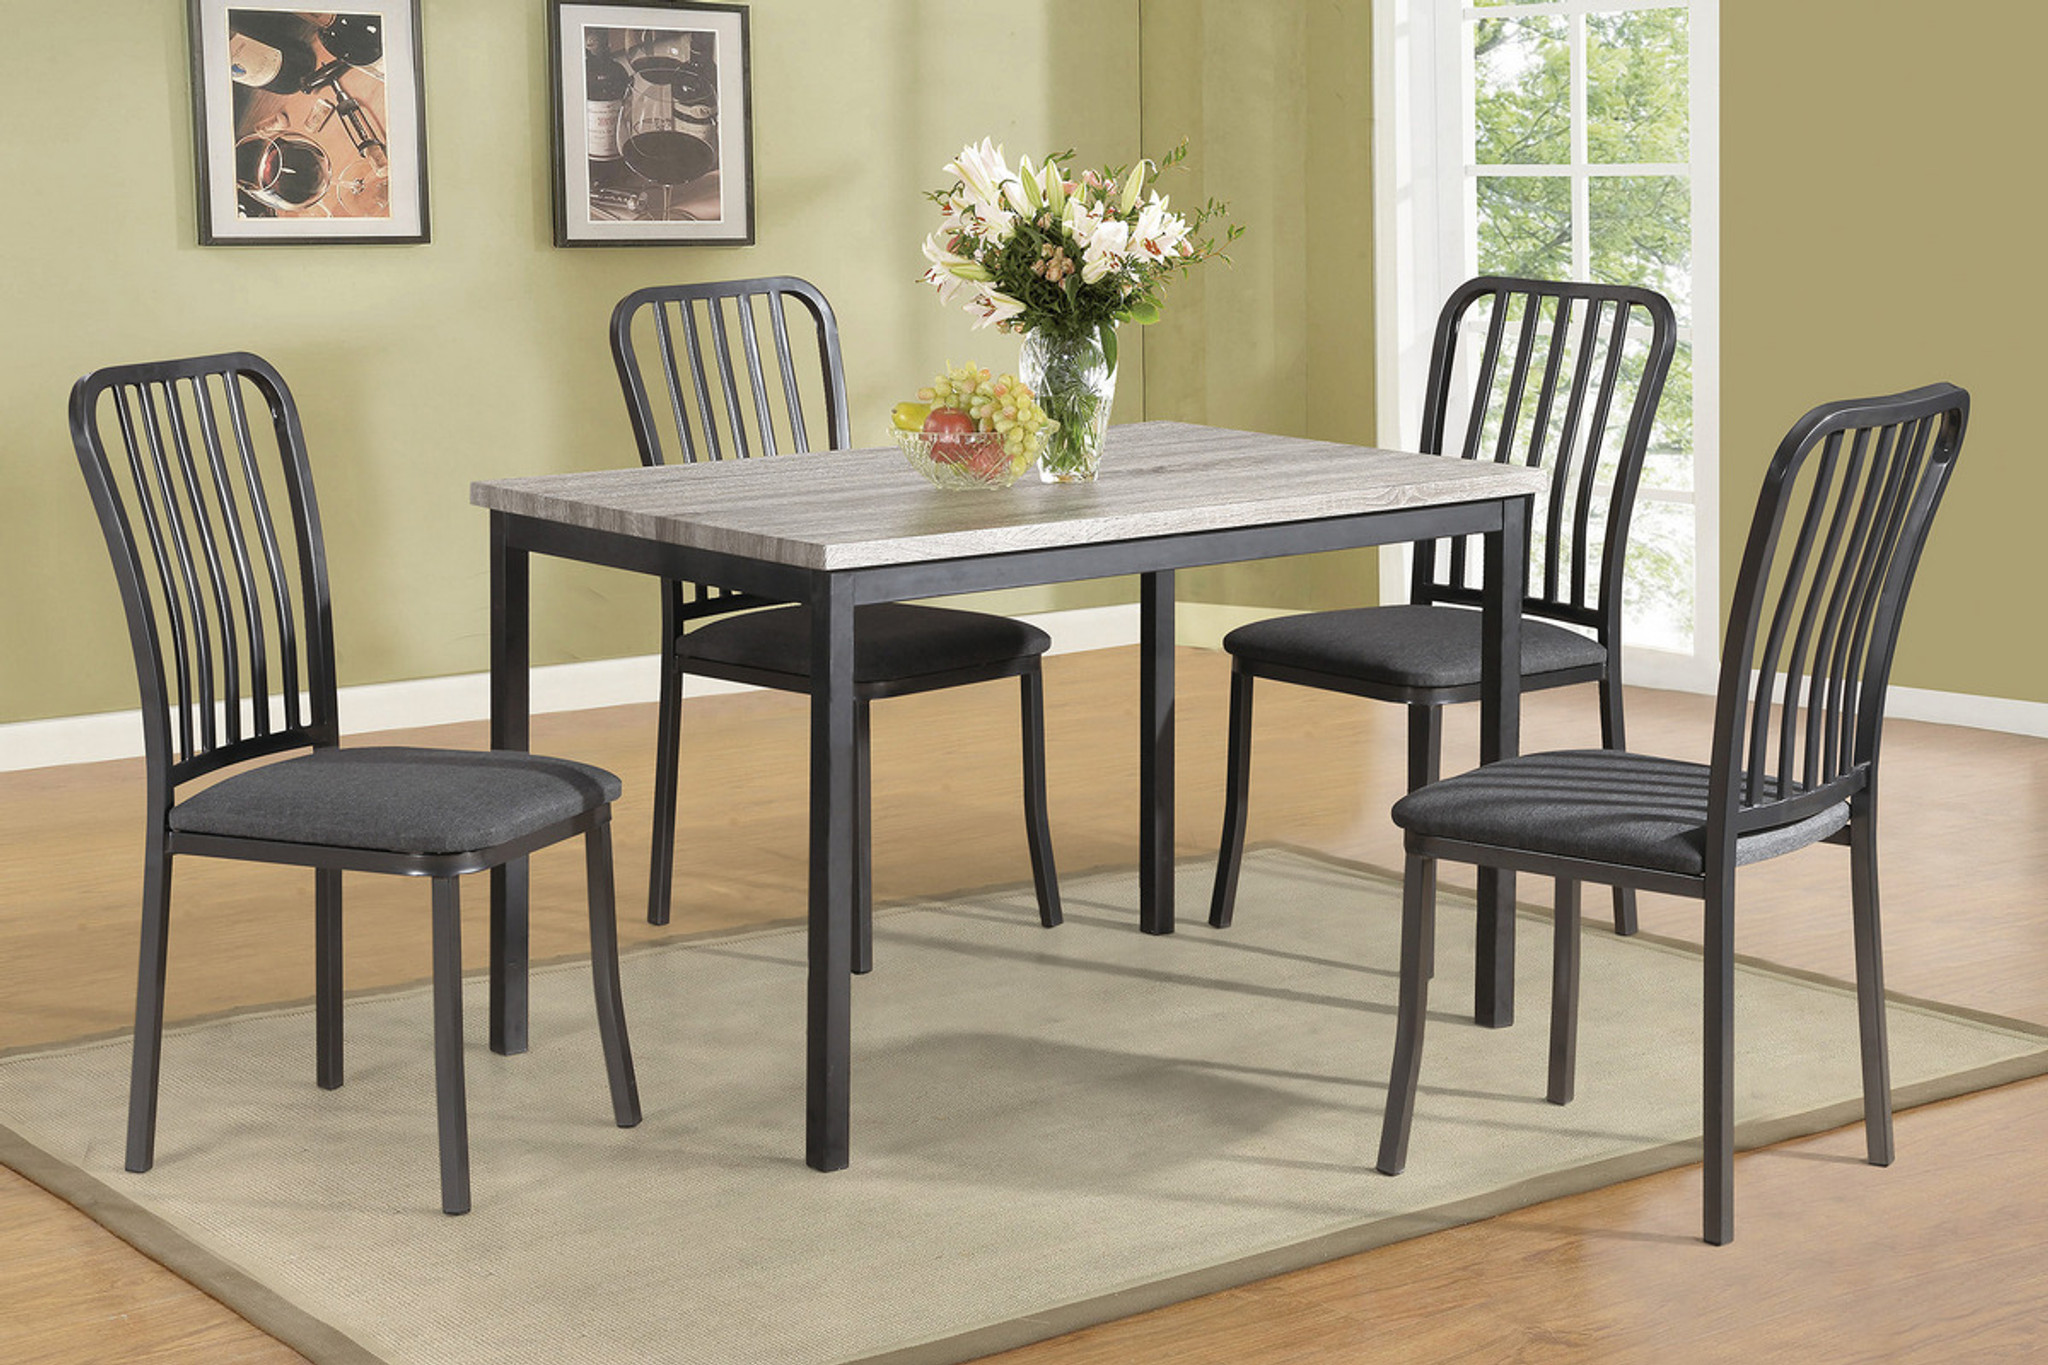 5PCS DINING TABLE SET GREY